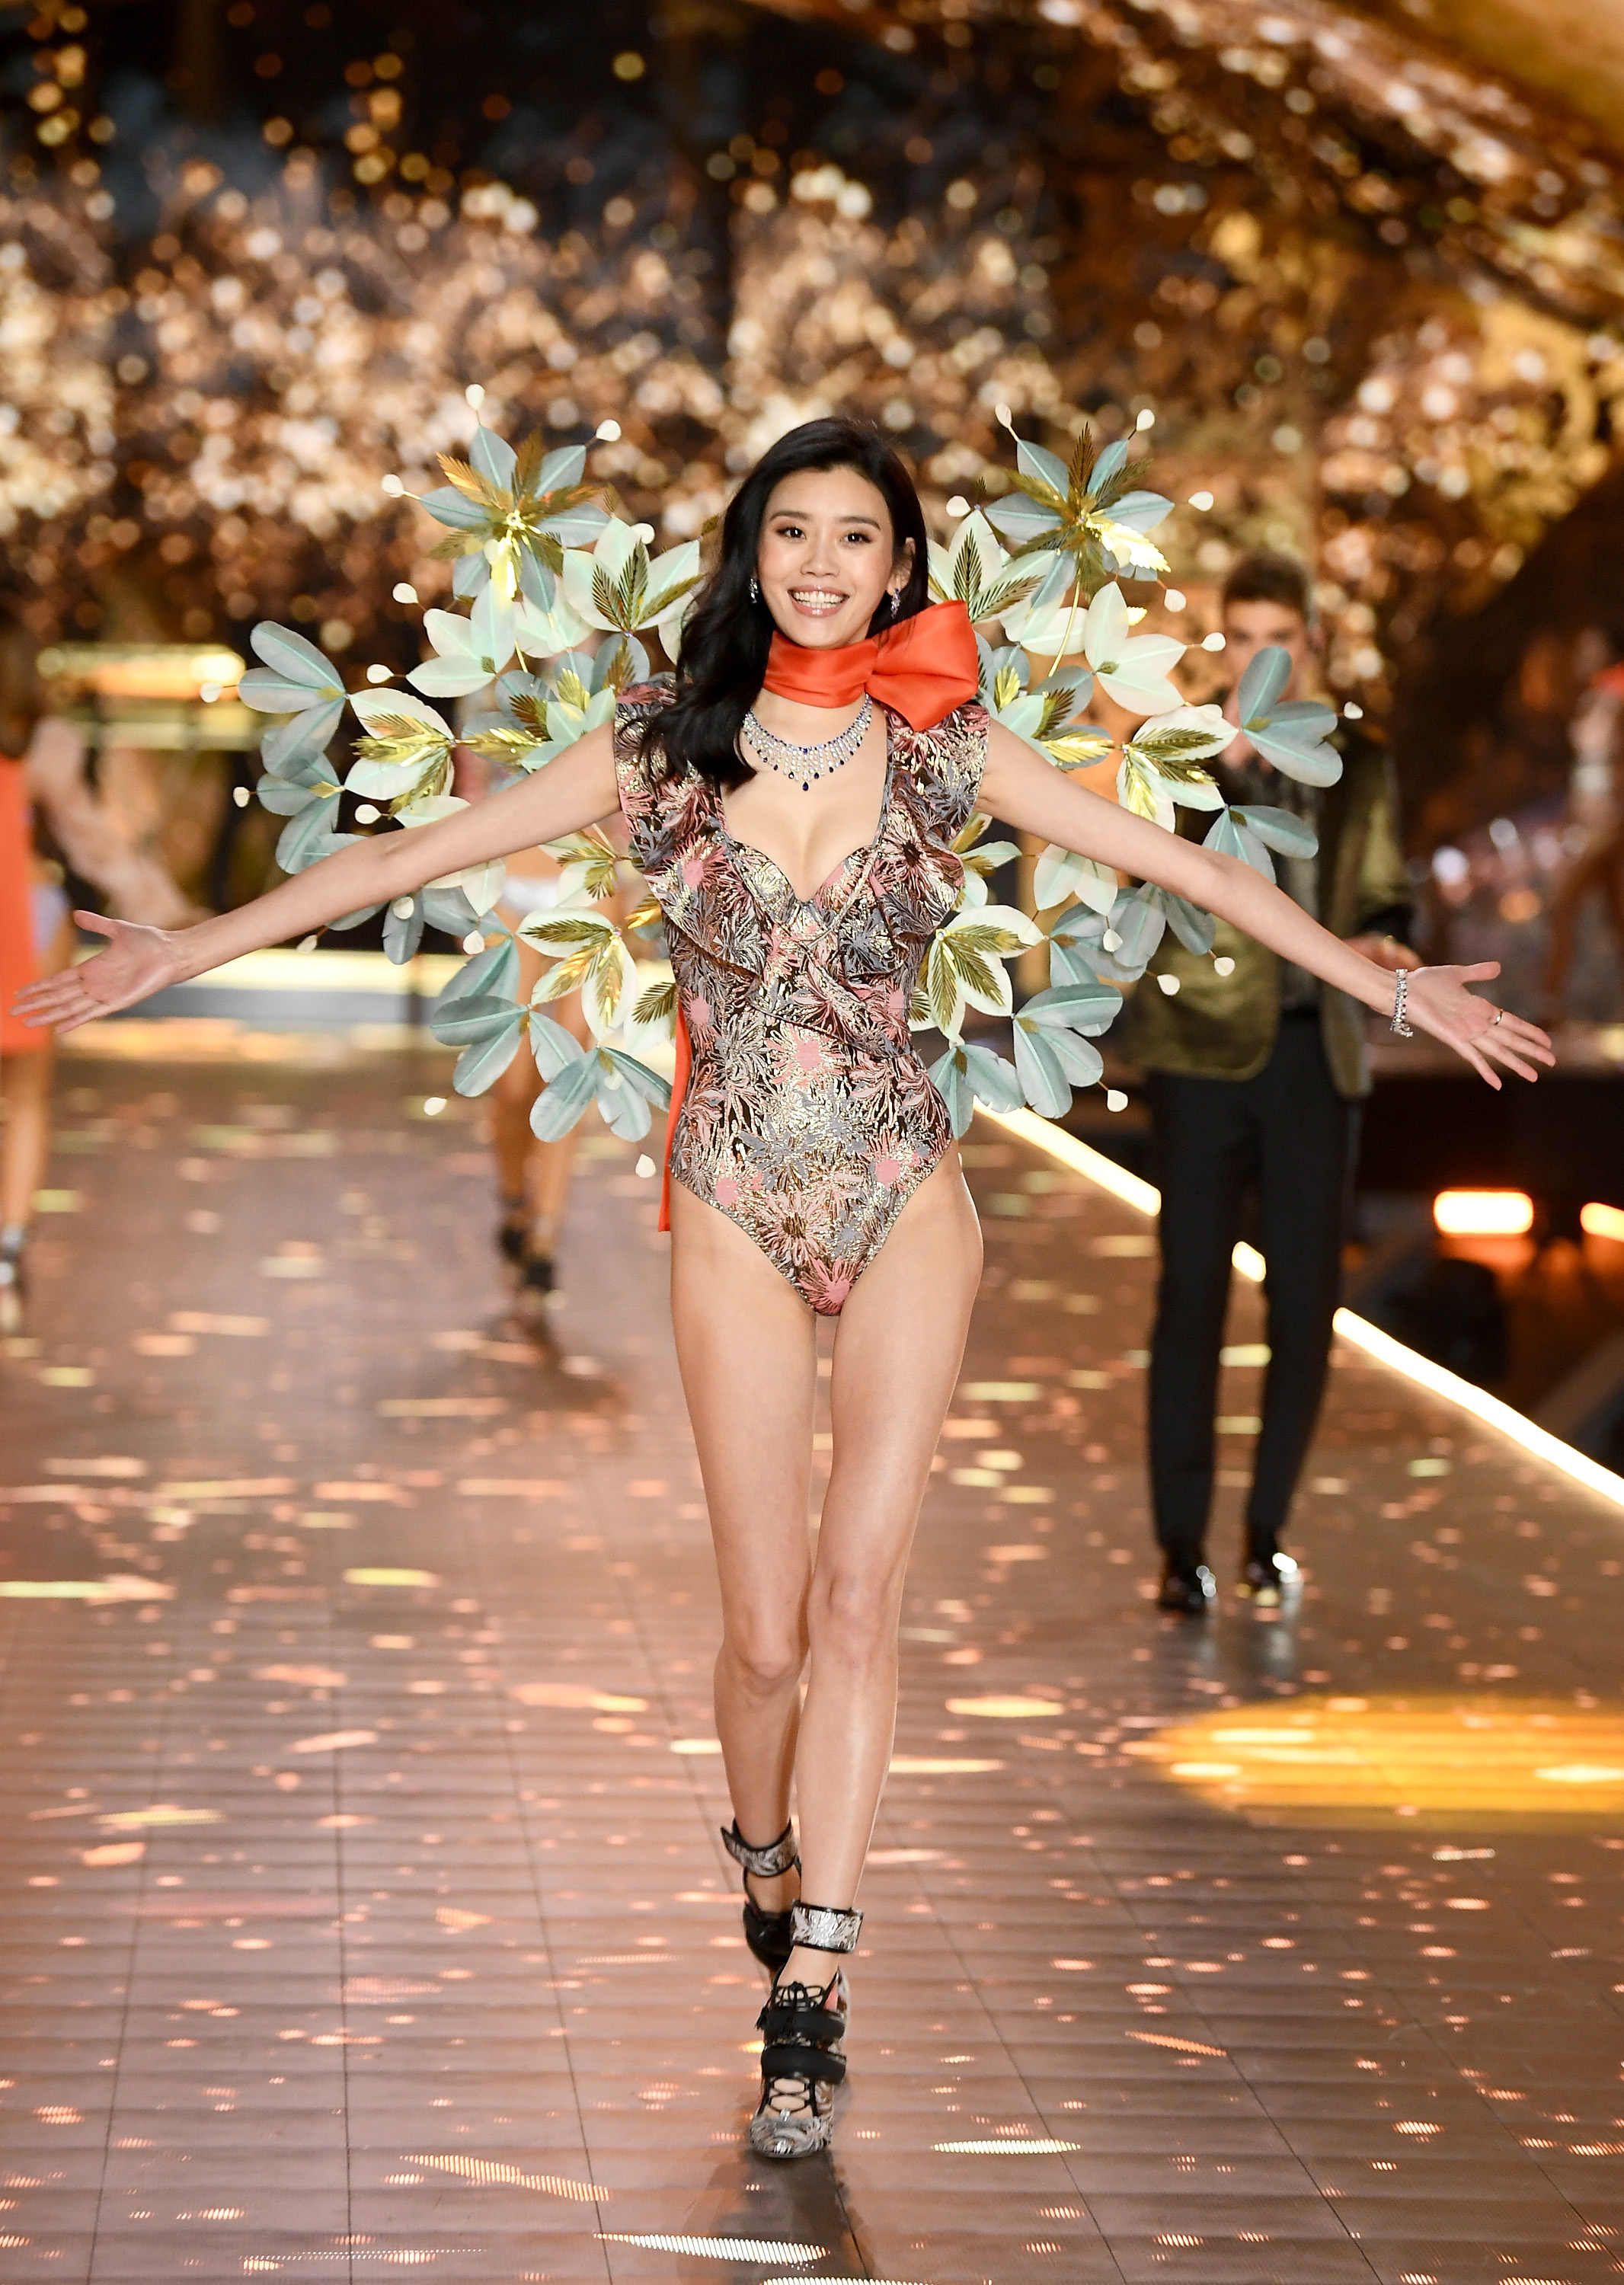 Ming Xi walks the runway during the 2018 Victoria's Secret Fashion Show at Pier 94 on November 8, 2018, in New York City. (Getty Images)